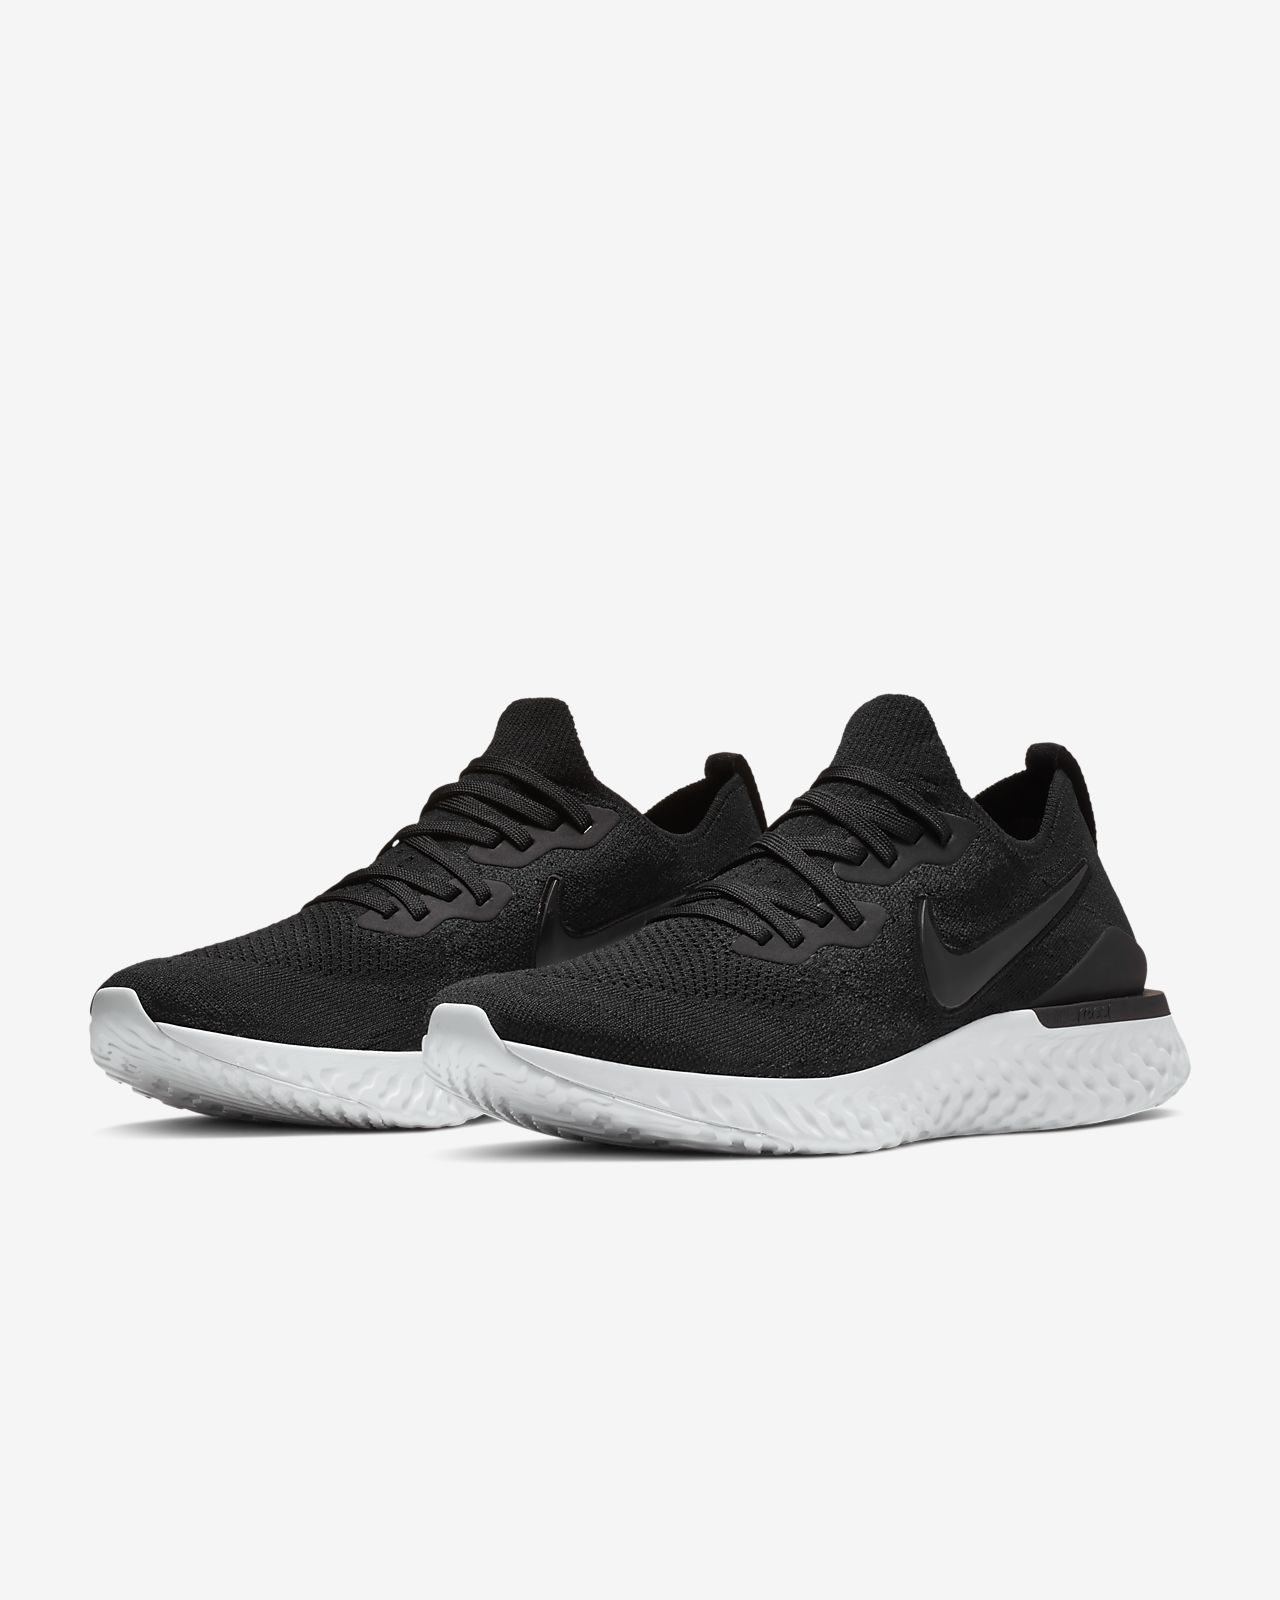 763422d777fb6 Nike Epic React Flyknit 2 Men s Running Shoe. Nike.com NZ